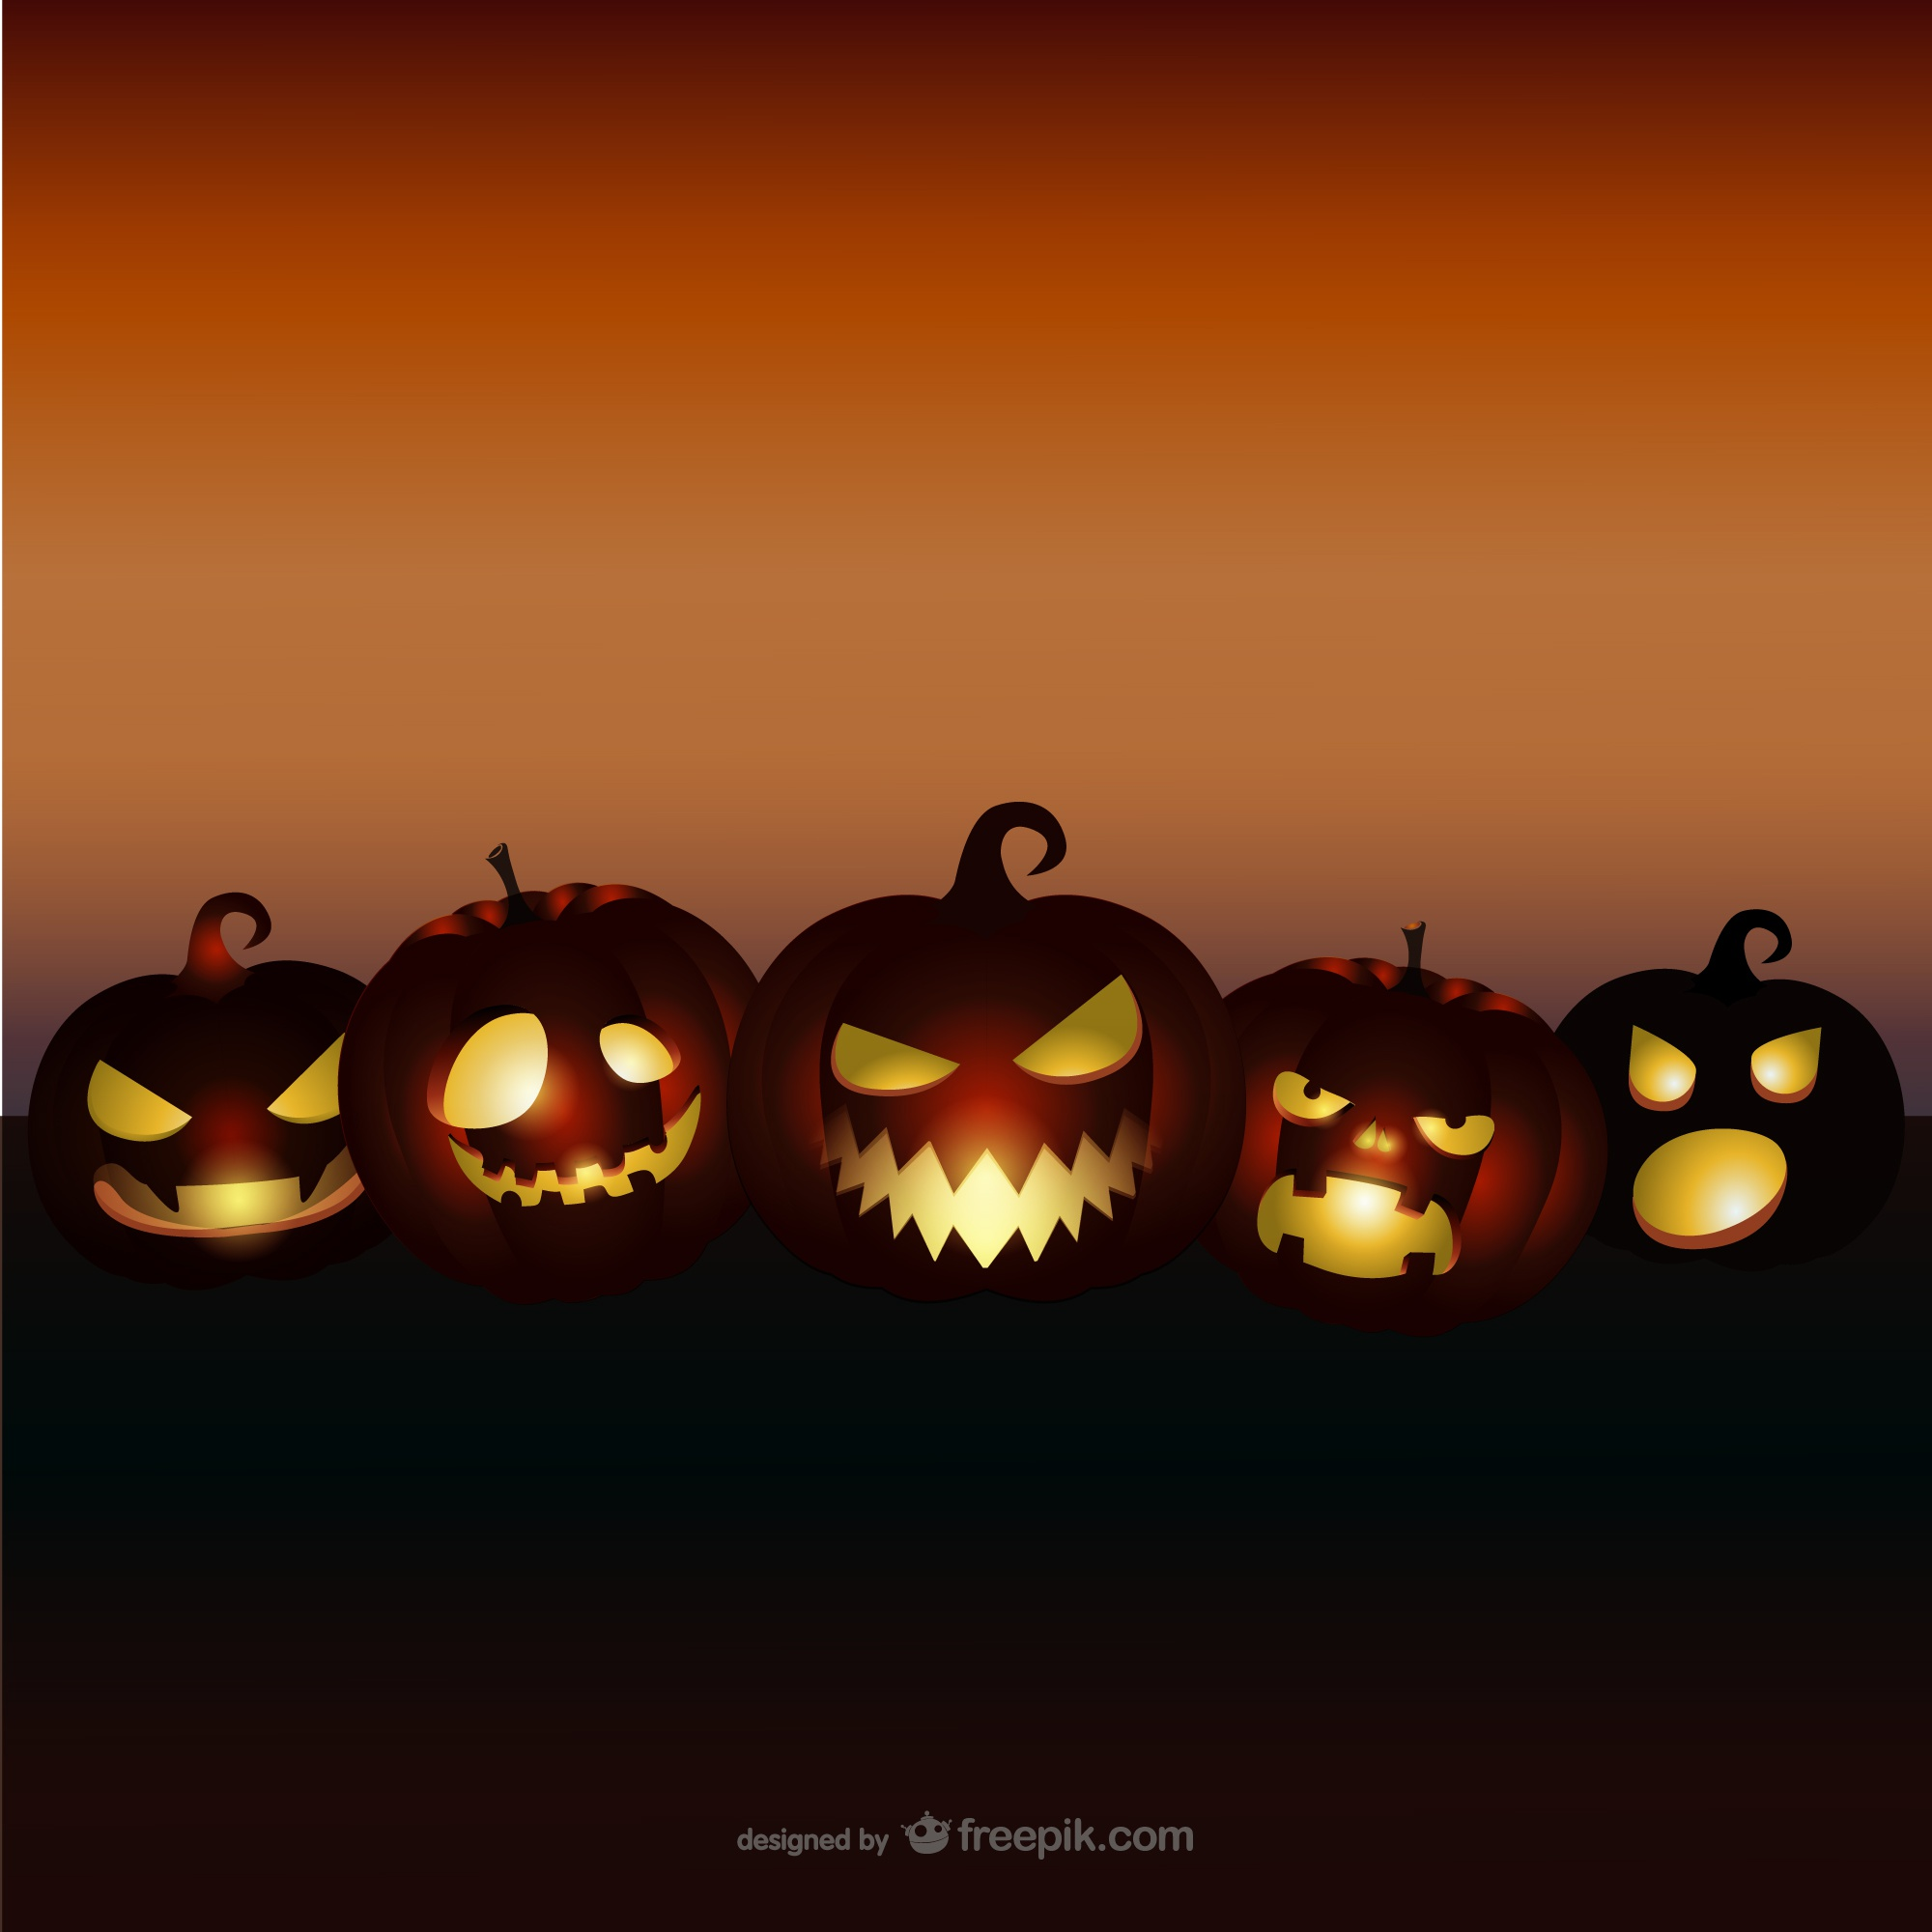 Halloween background with evil pumpkins